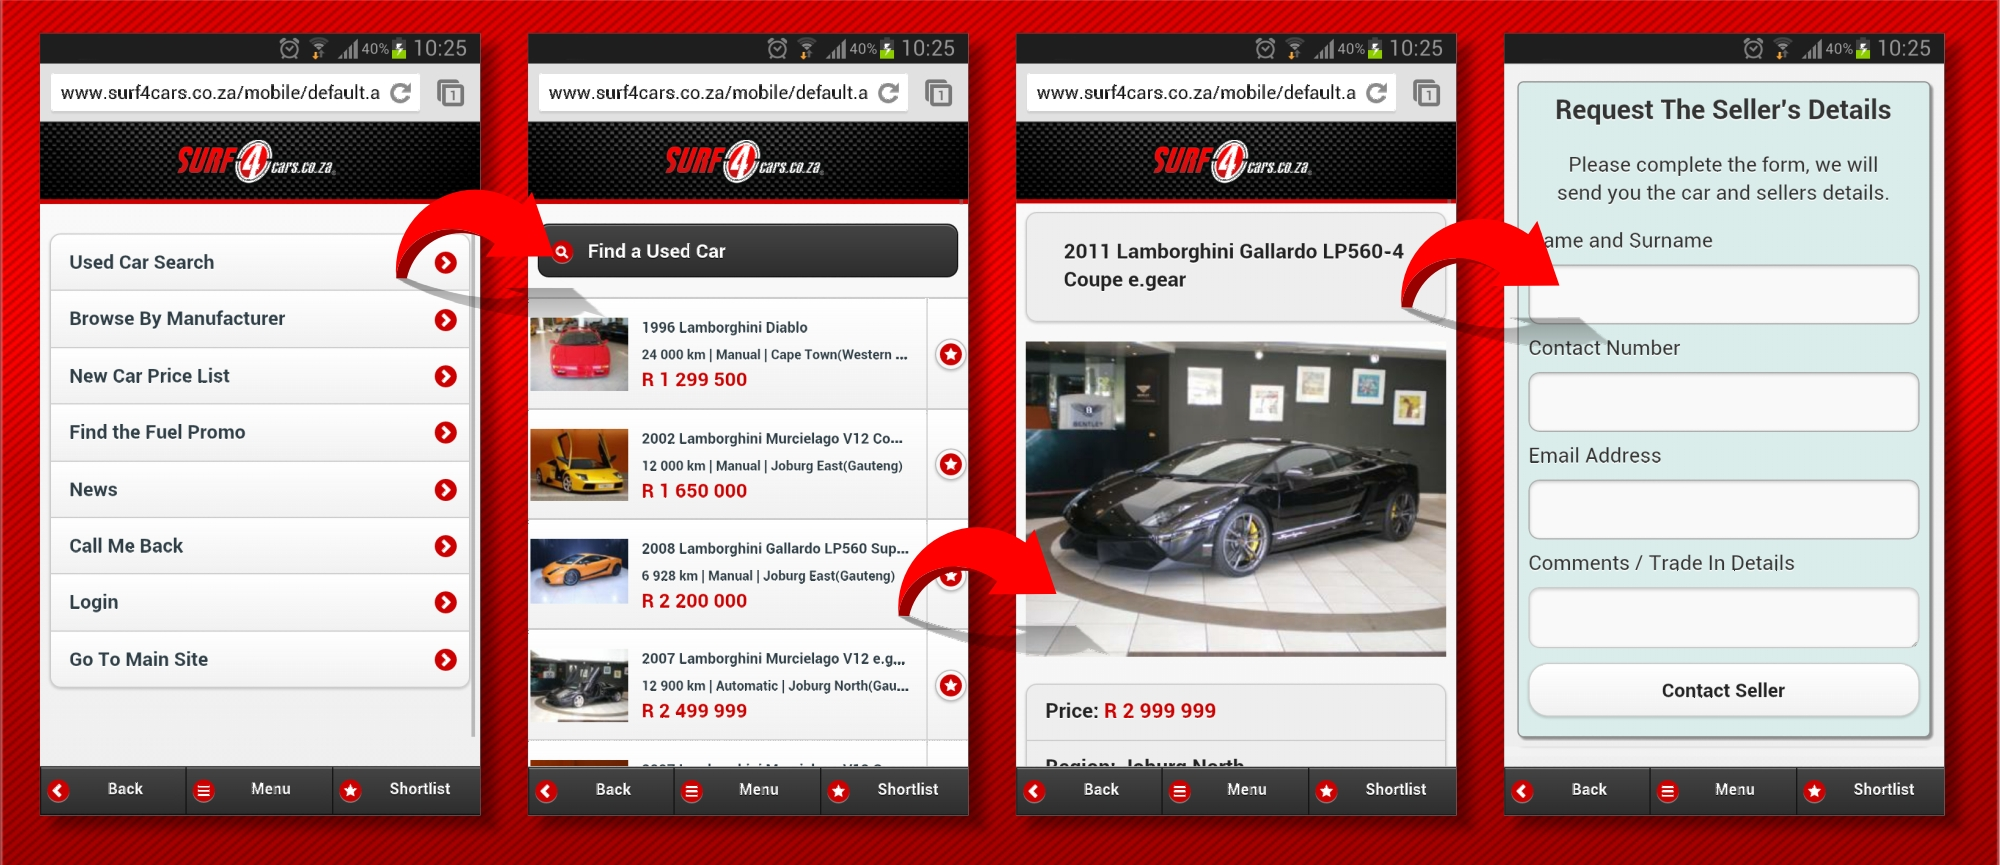 Our Mobile Site Goes Live: Latest News – Surf4cars